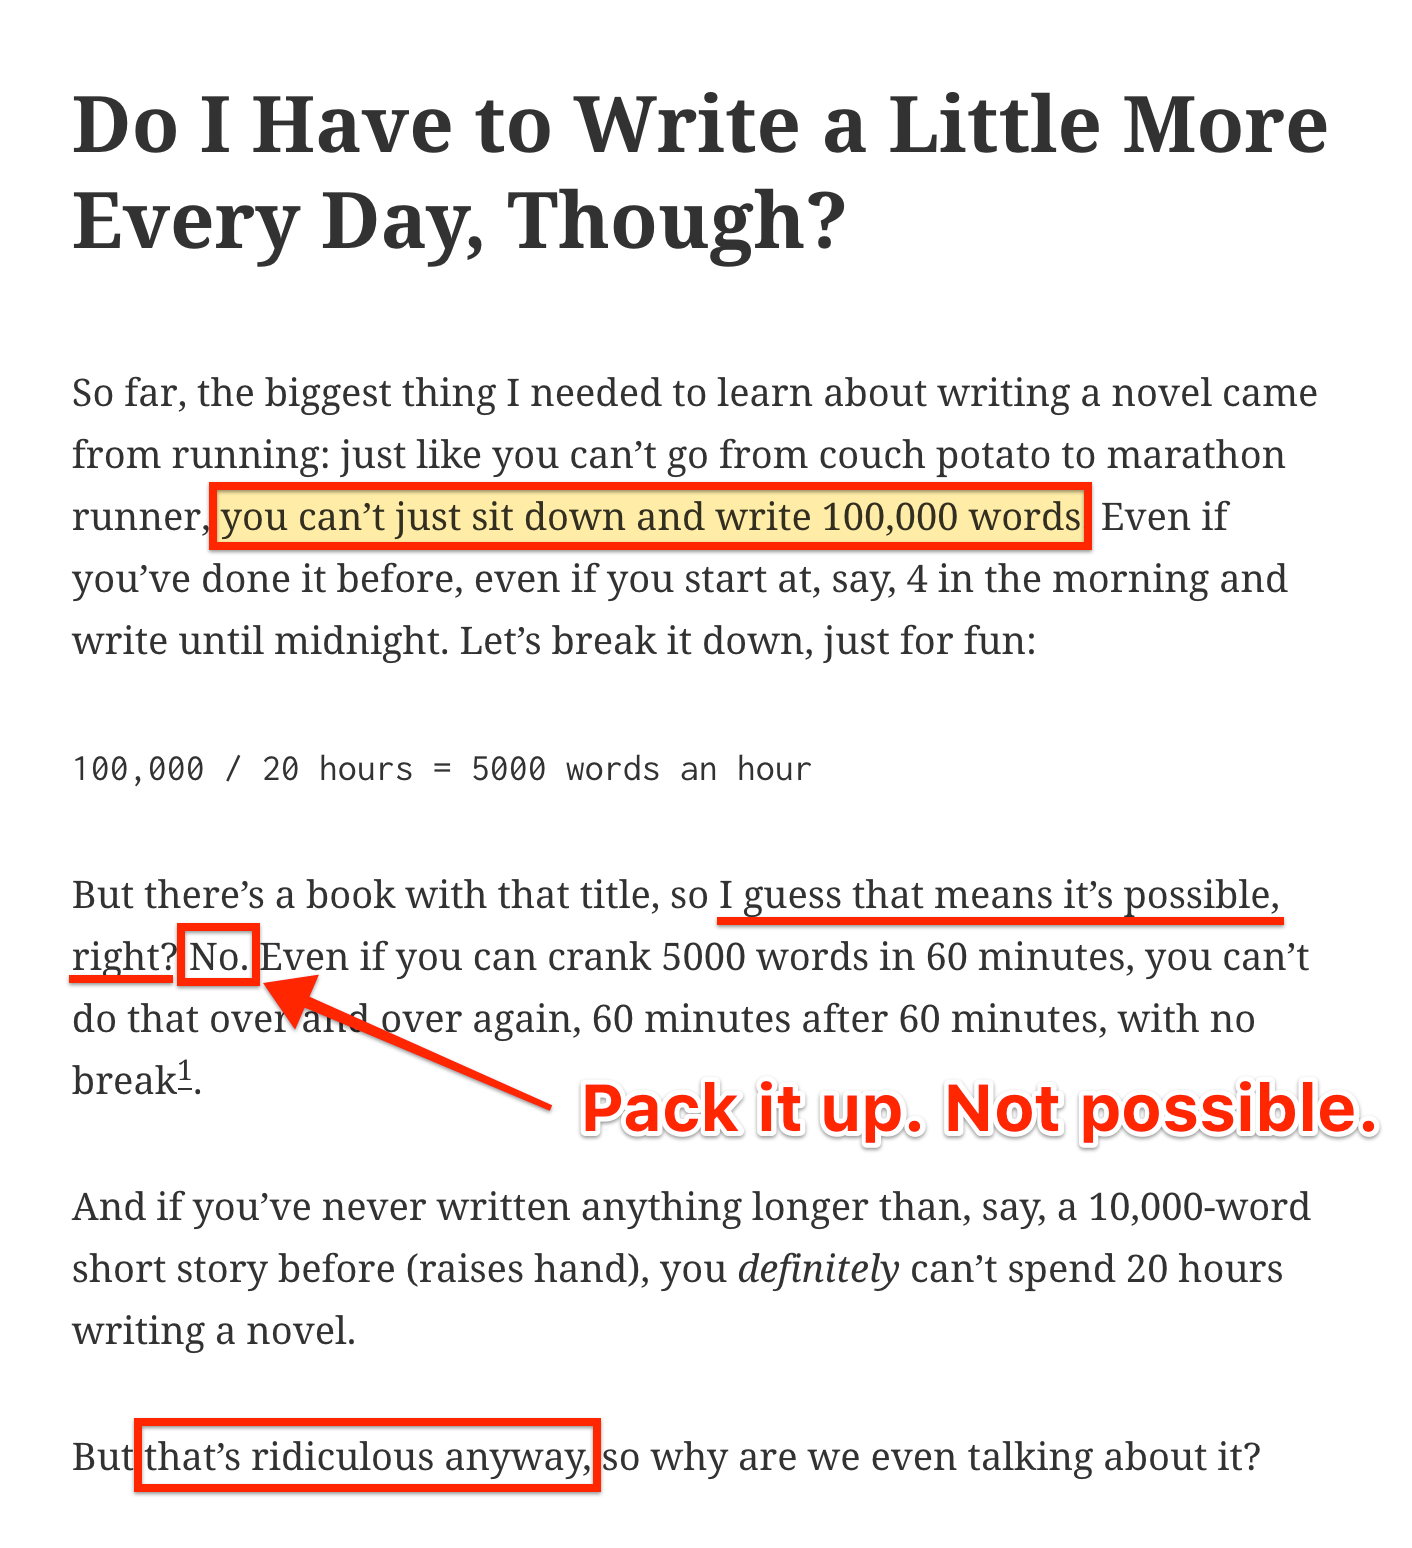 Writing 100,000 words in a day is impossible.